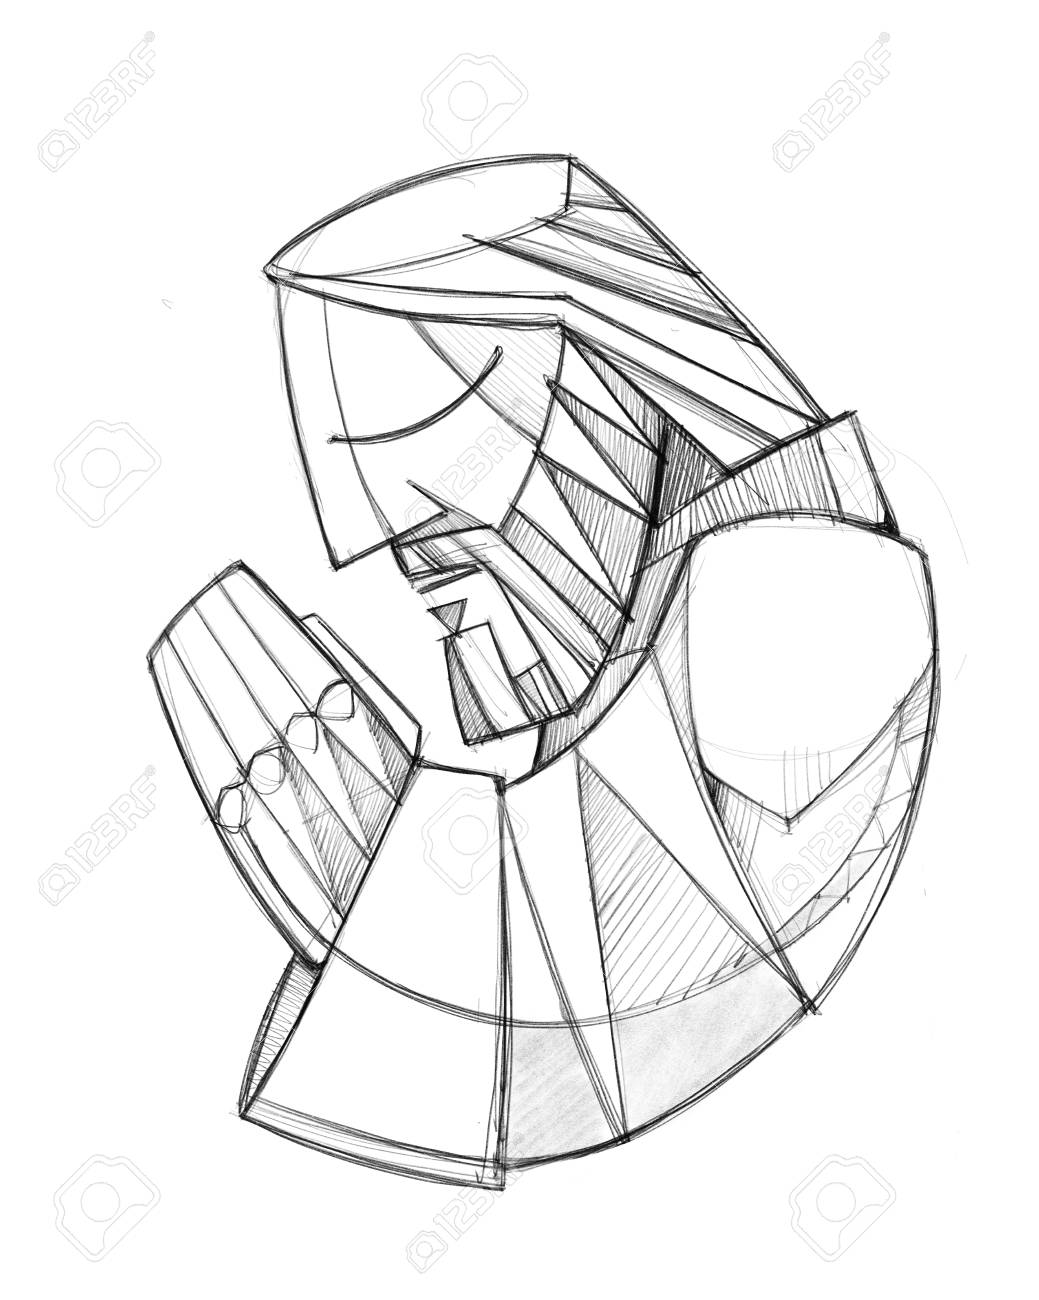 Hand drawn pencil illustration or drawing of jesus christ praying stock illustration 110792417